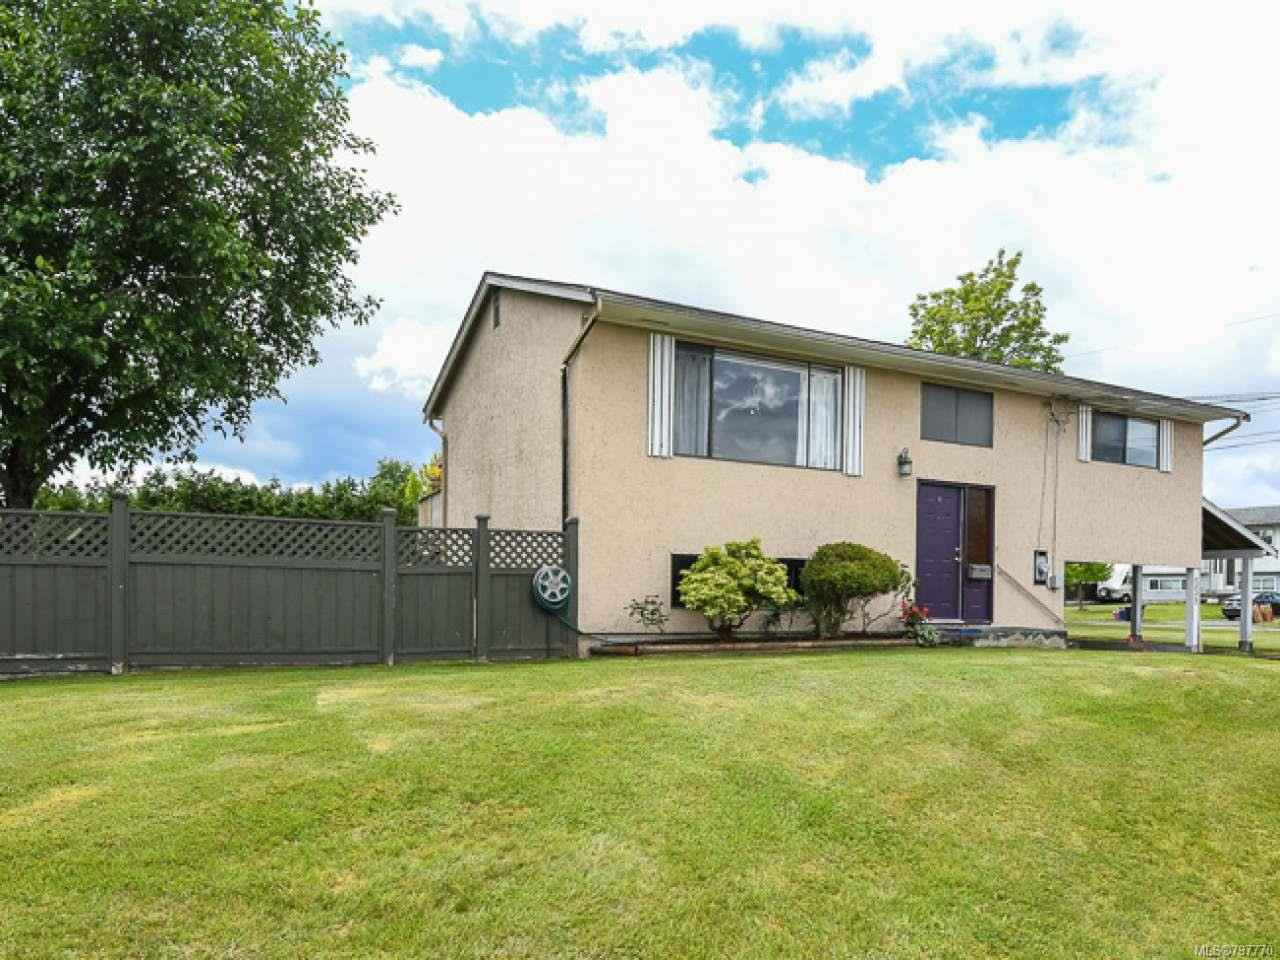 Main Photo: 558 23rd St in COURTENAY: CV Courtenay City House for sale (Comox Valley)  : MLS®# 797770